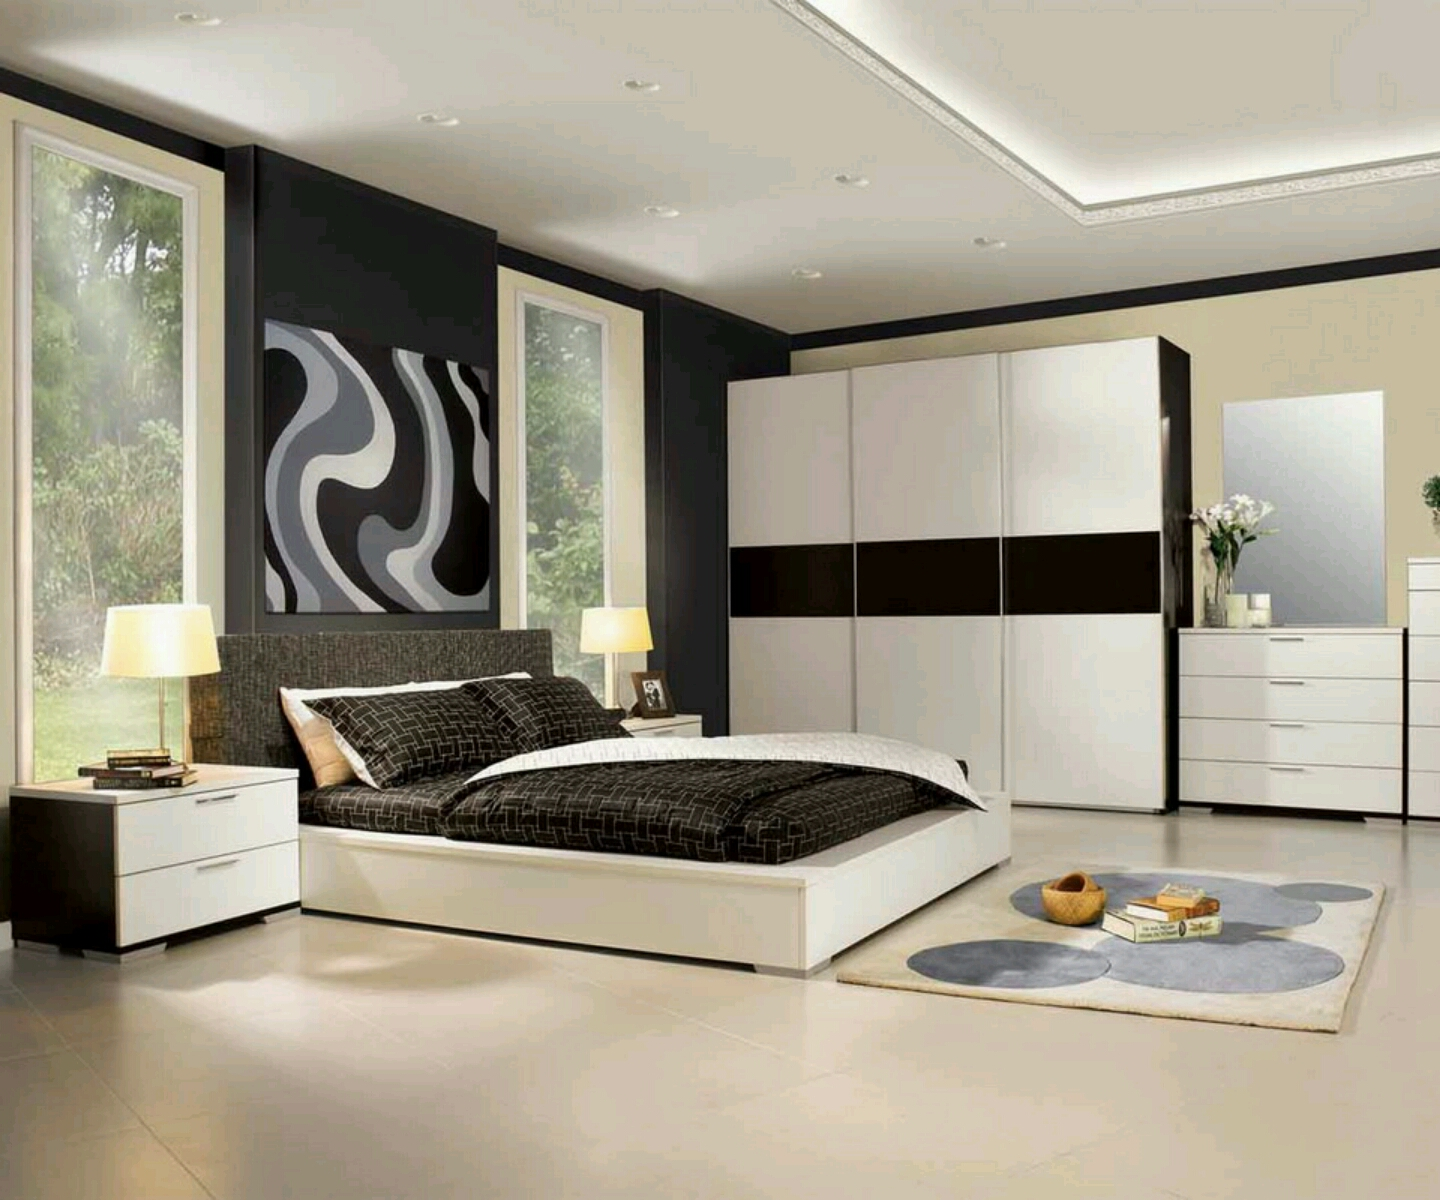 Modern luxury bedroom furniture designs ideas.  Vintage Romantic Home